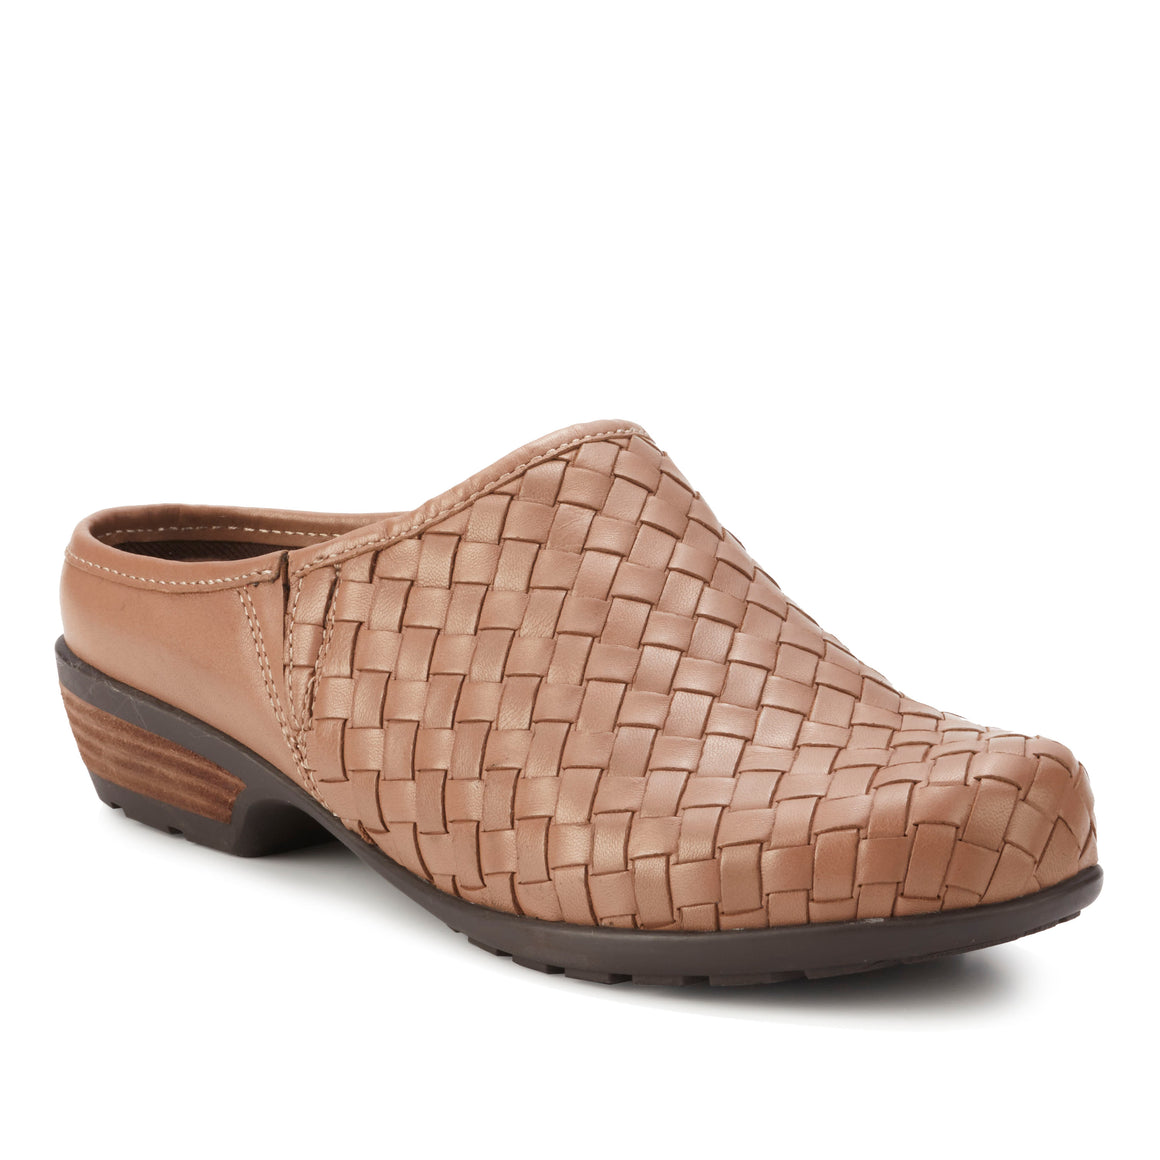 Emerson: Warm Taupe Woven Leather NEW